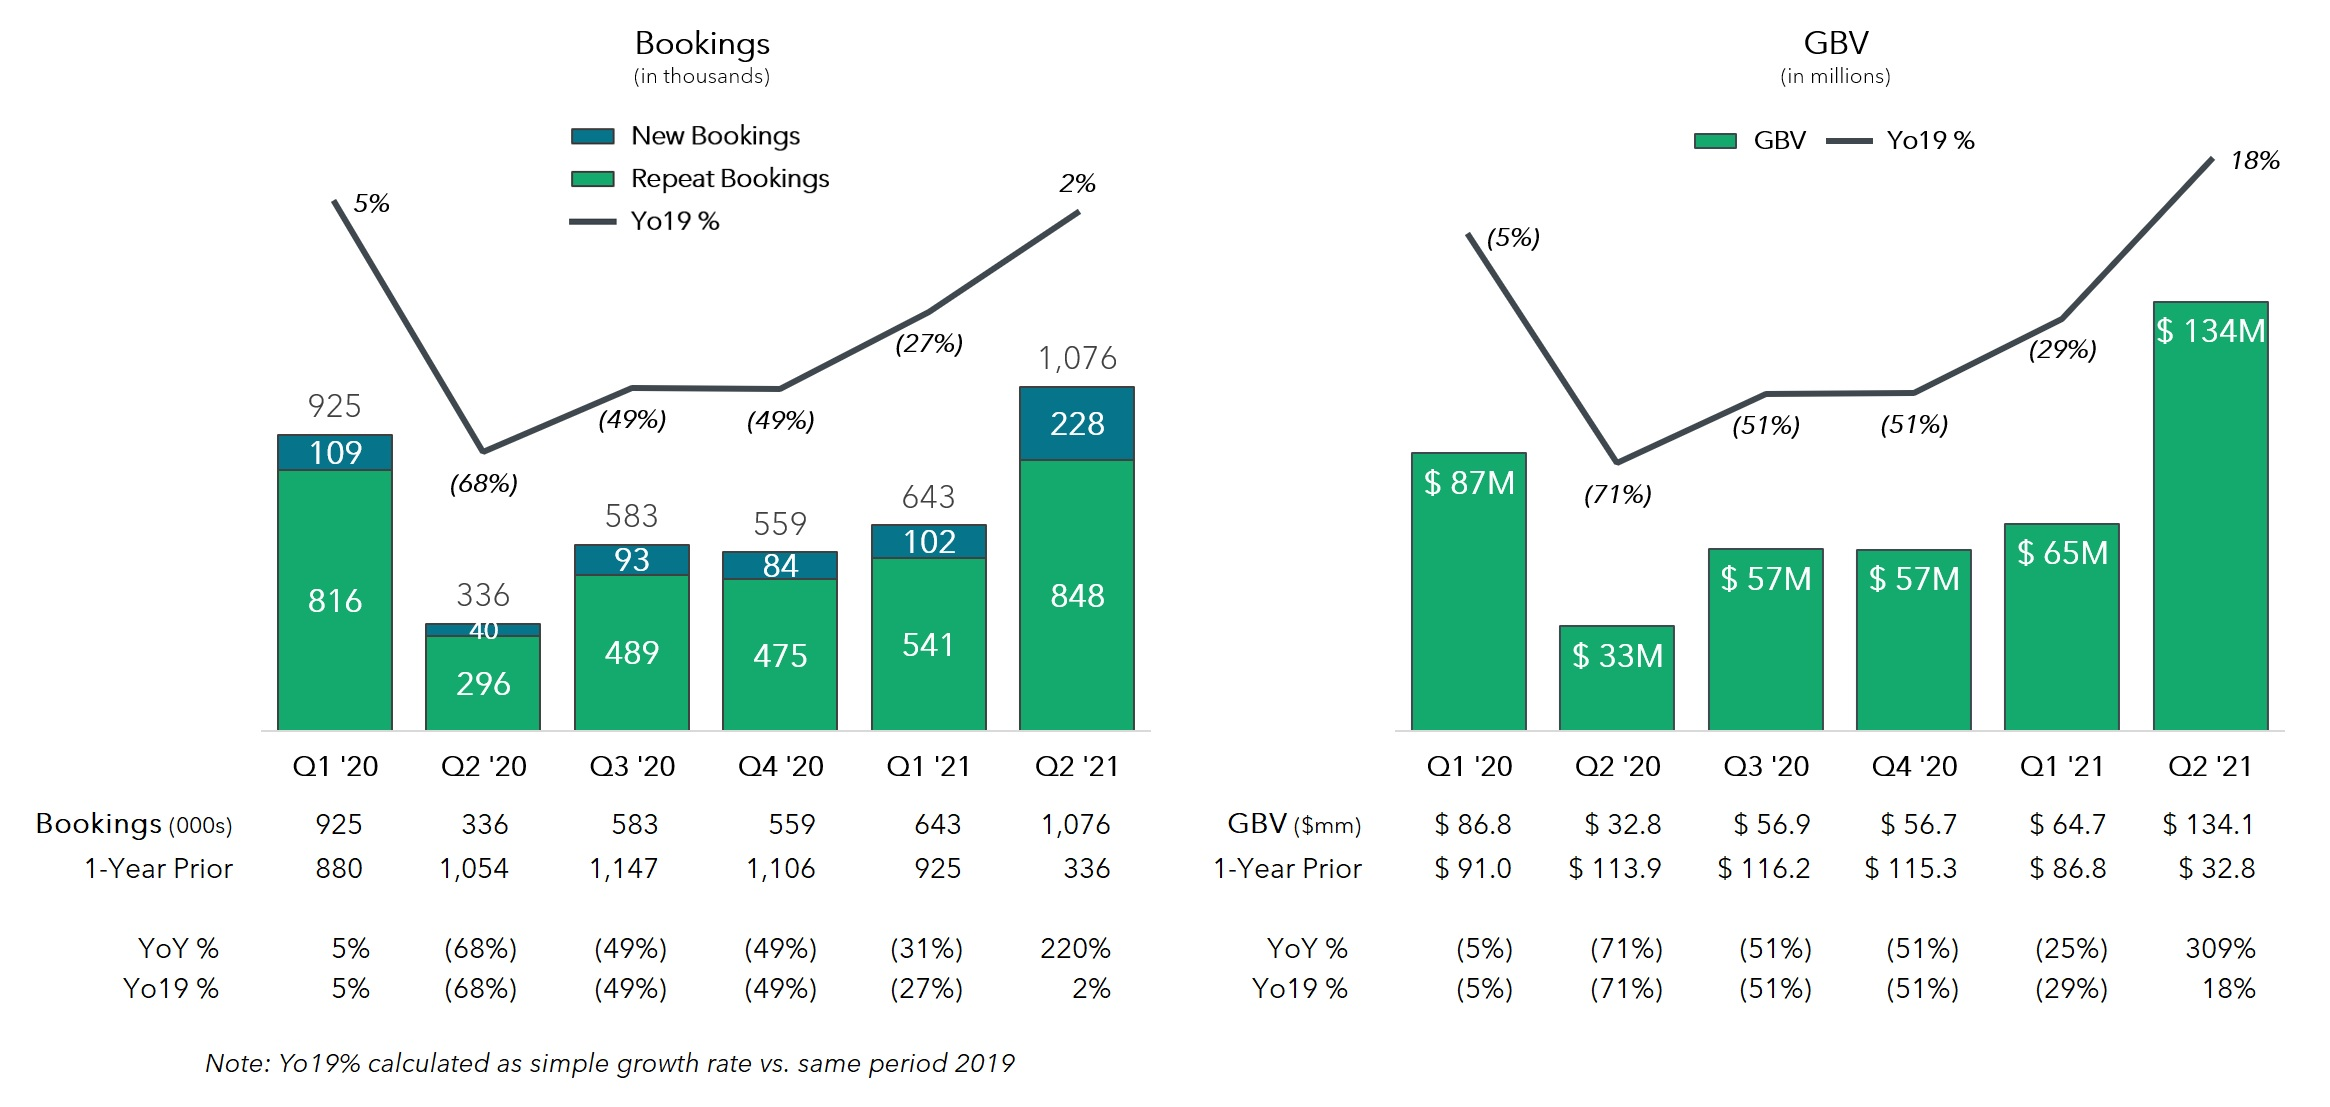 Rover Q2 Earnings Release